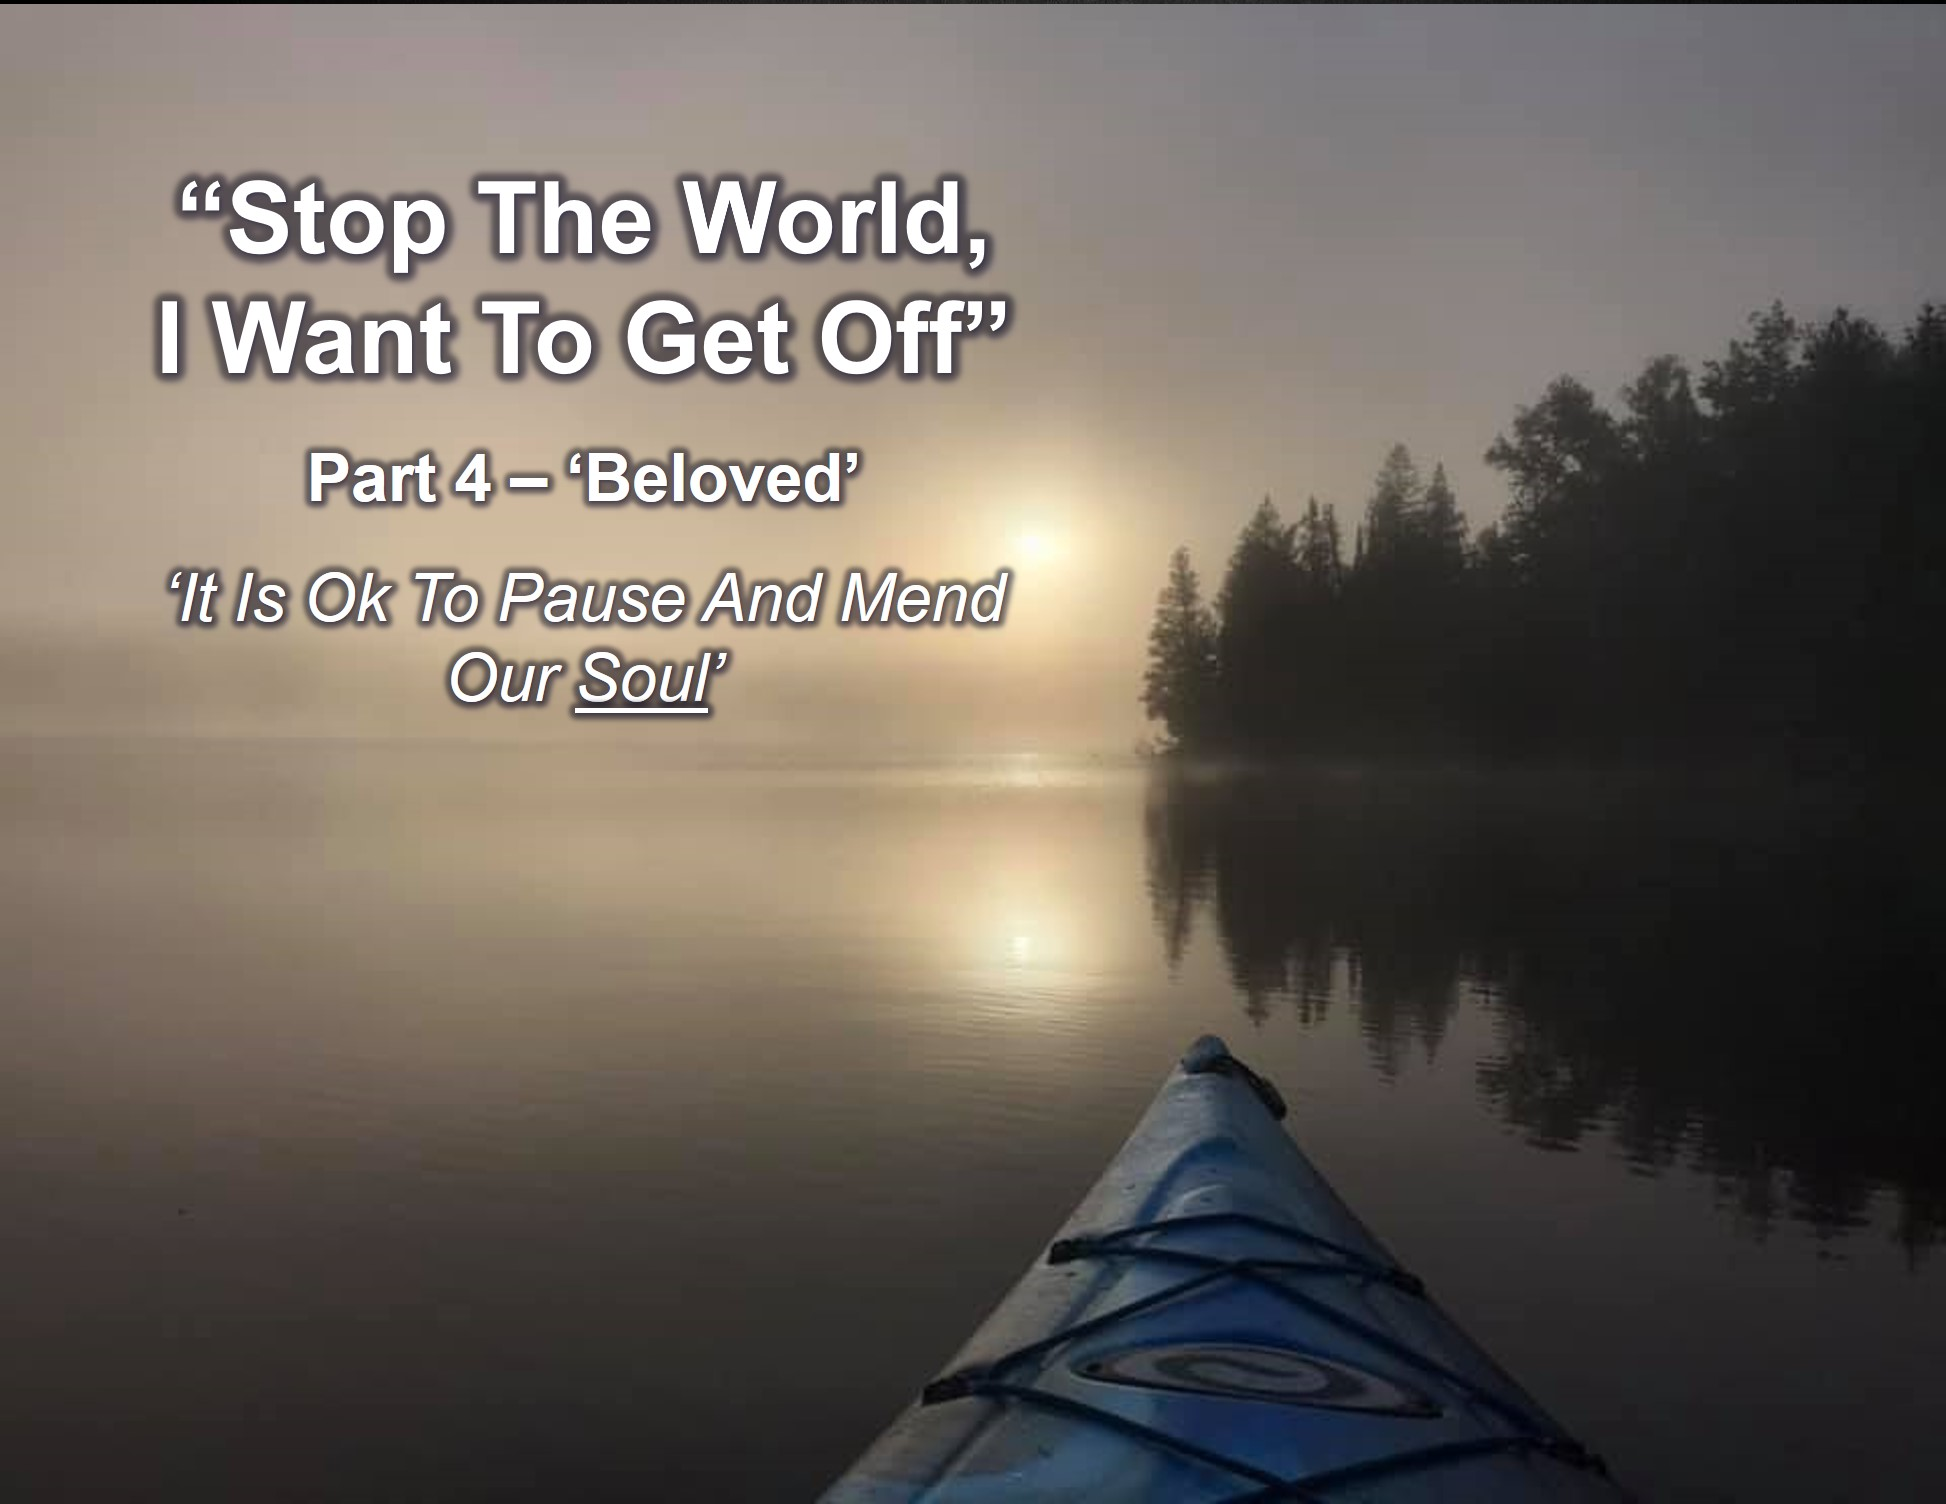 stop the world 4 Beloved